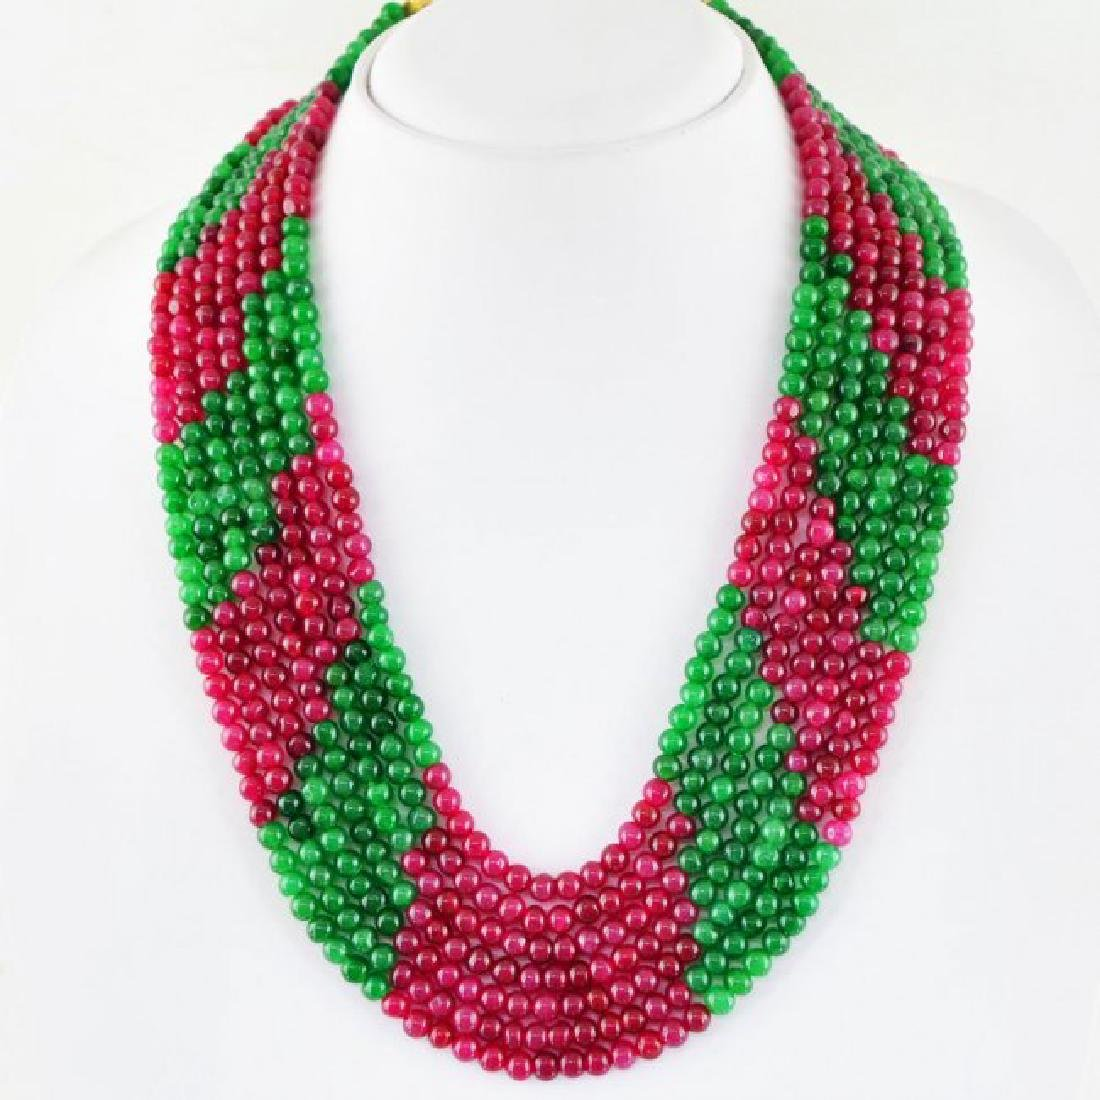 EARTH MINED RED RUBY & GREEN EMERALD 7 STRAND ROUND BEA - 2